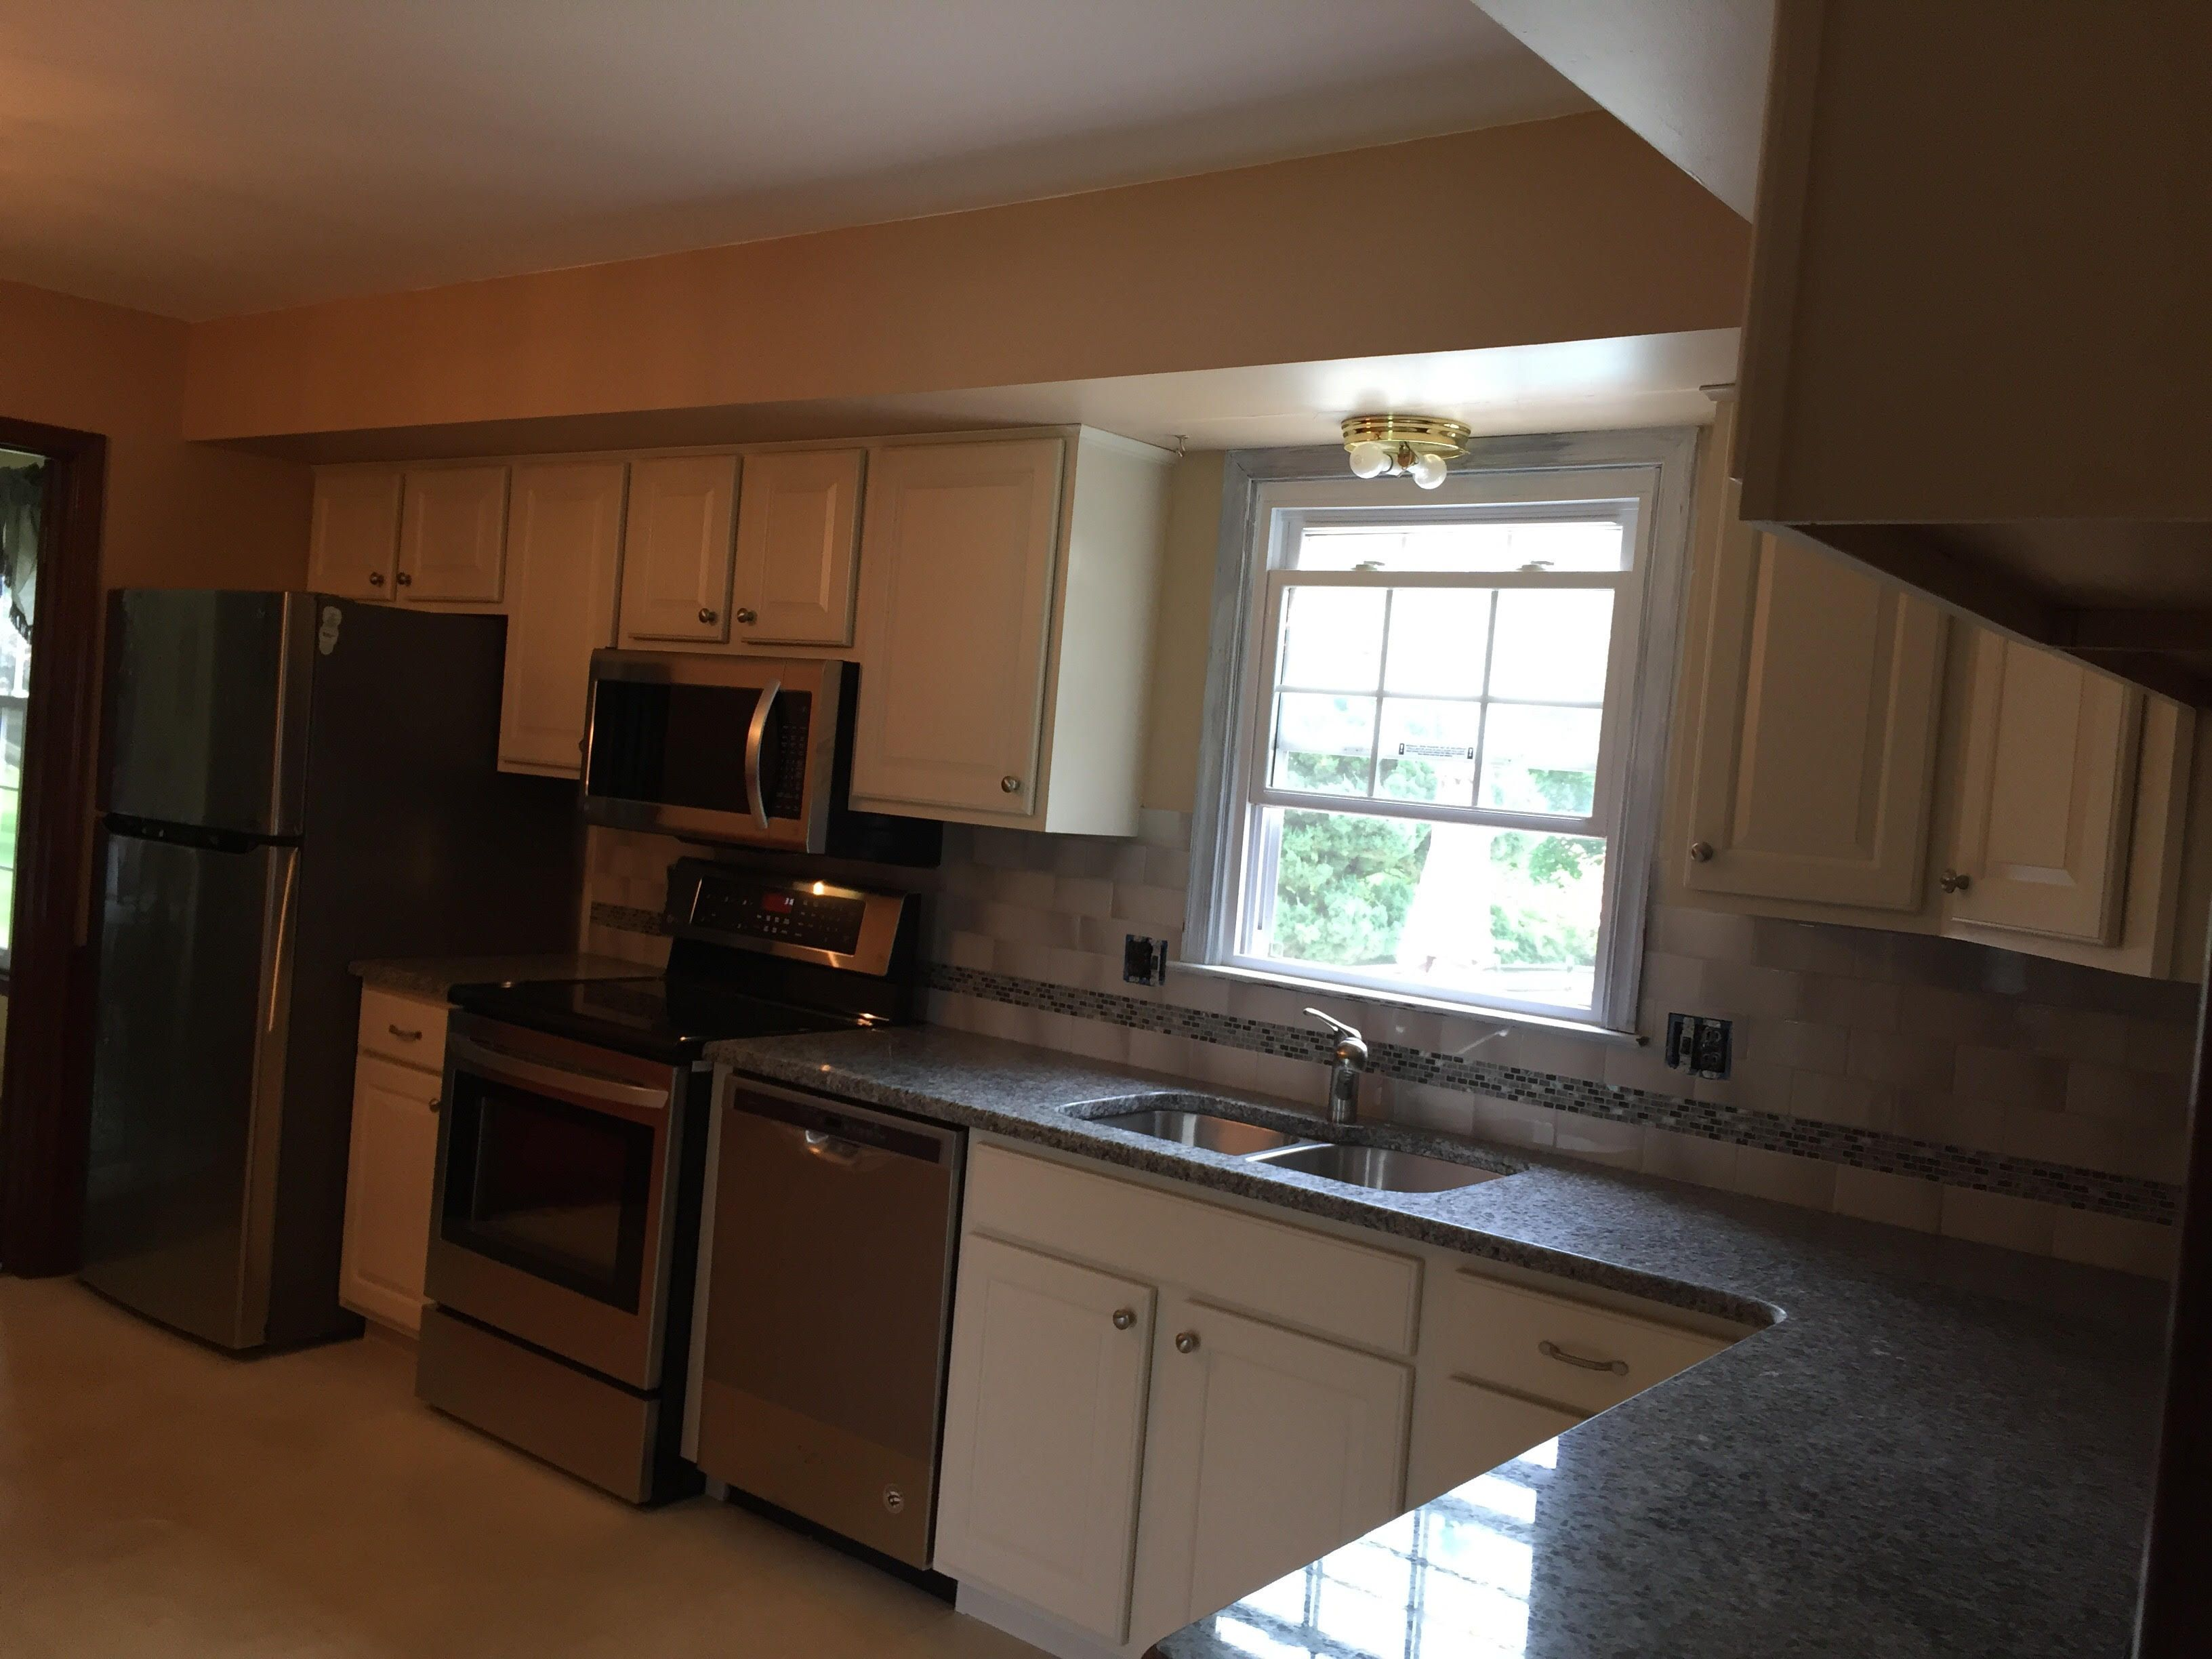 Small kitchen remodel in 5 days new